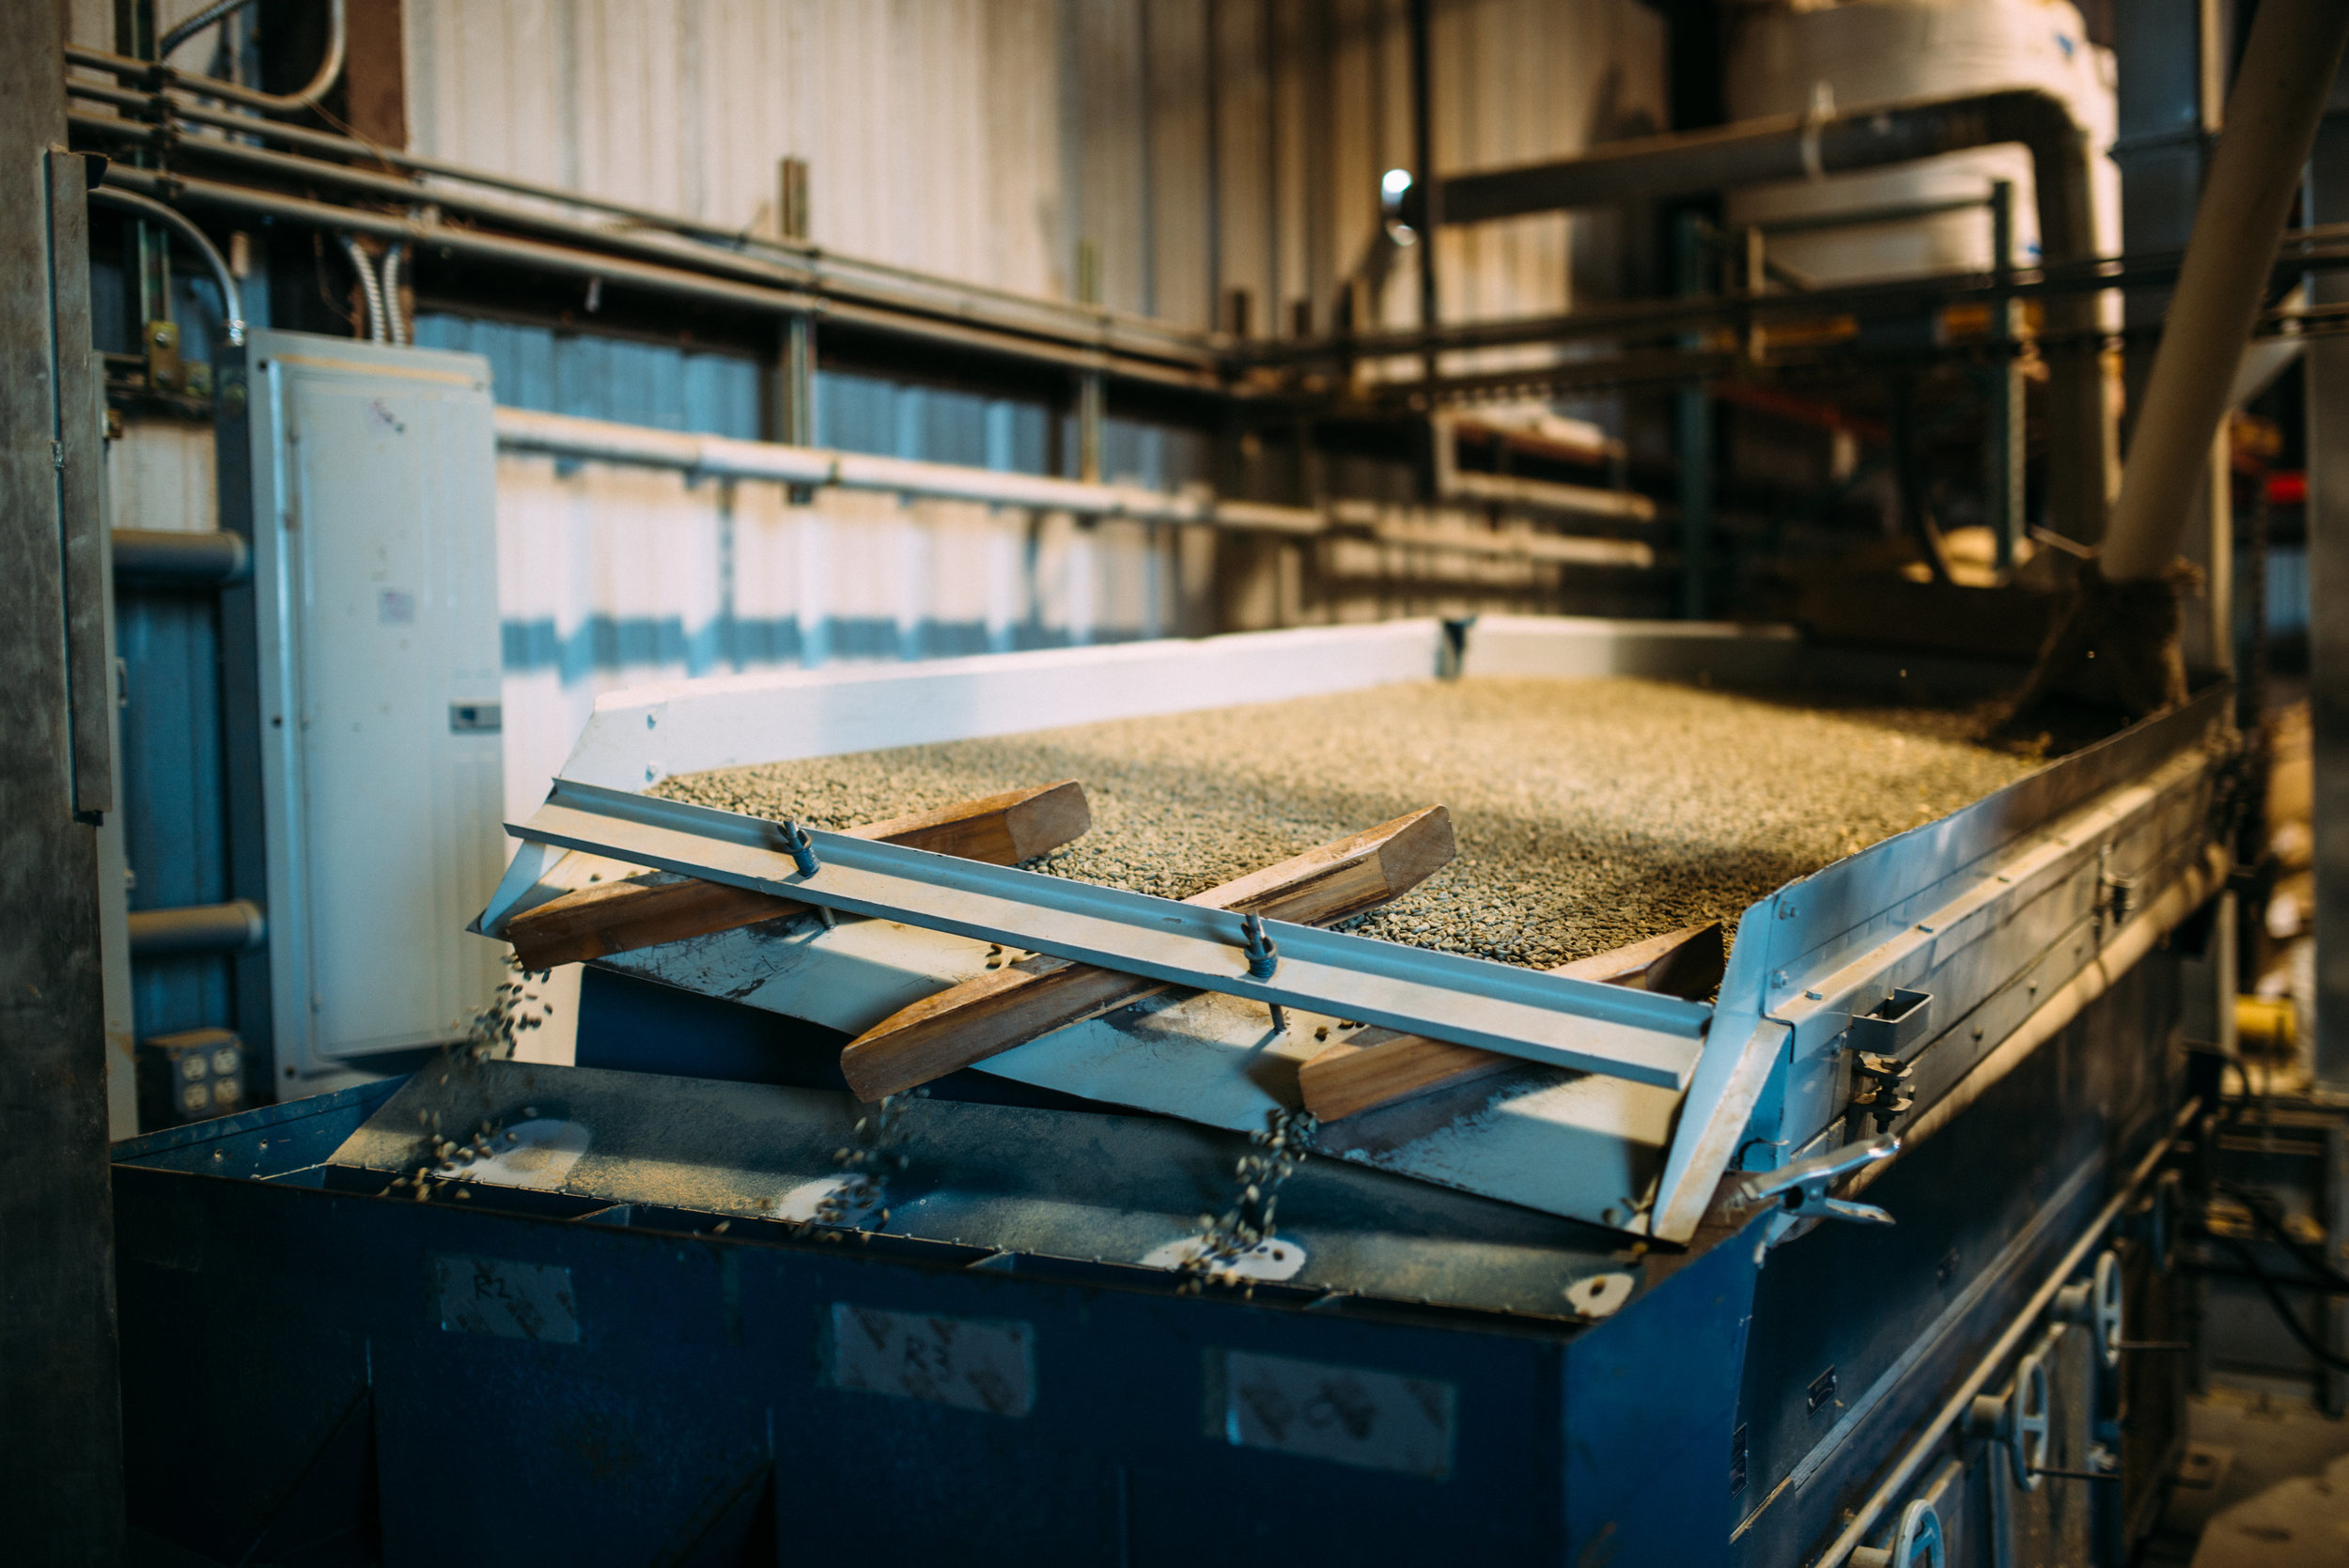 green coffee beans being graded at the Kona Coffee & Tea Mill in Kona, Hawaii. PHOTO: Blake Wisz